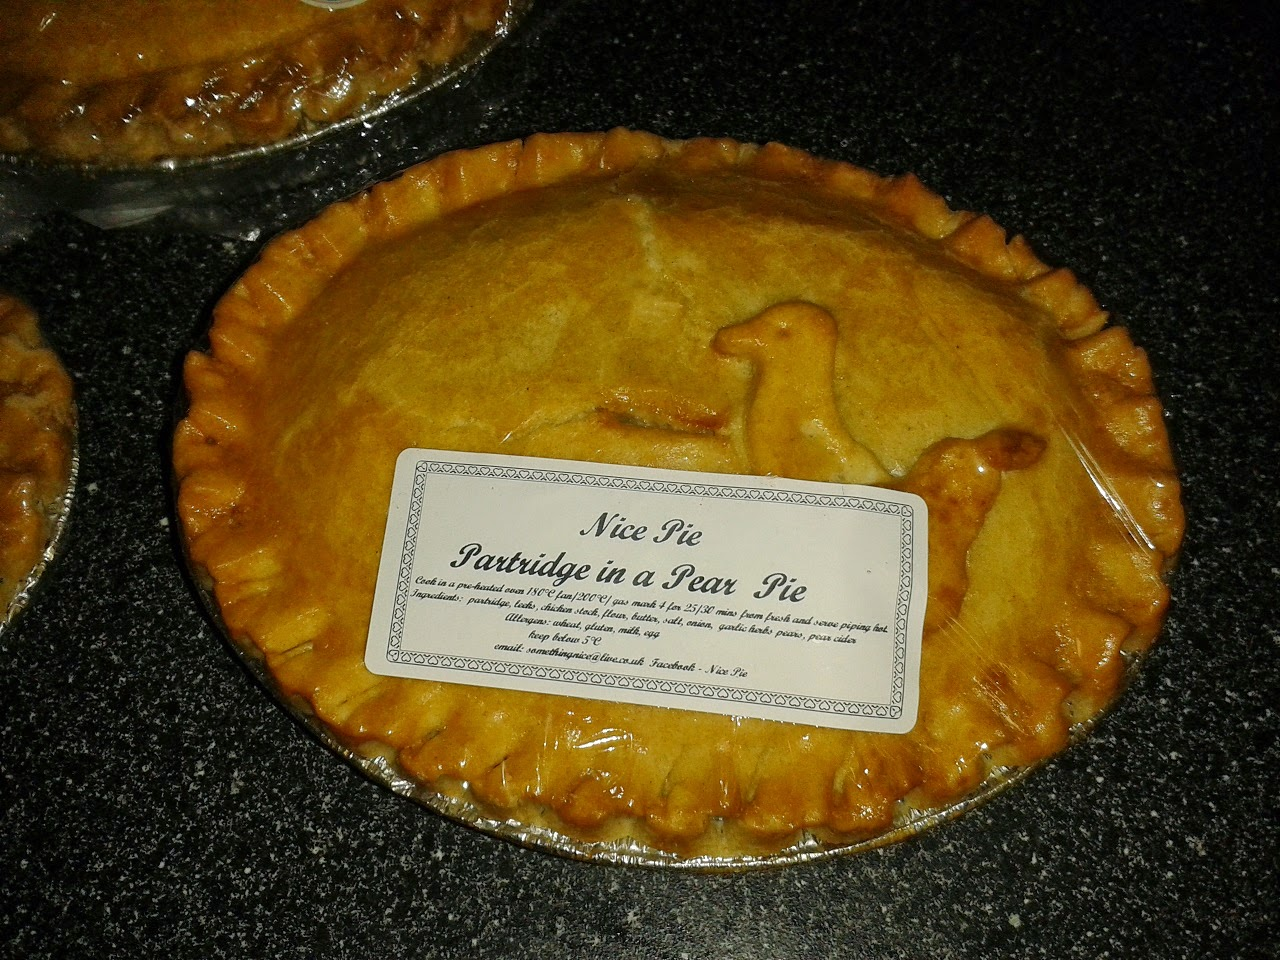 Partridge in a pear pie review